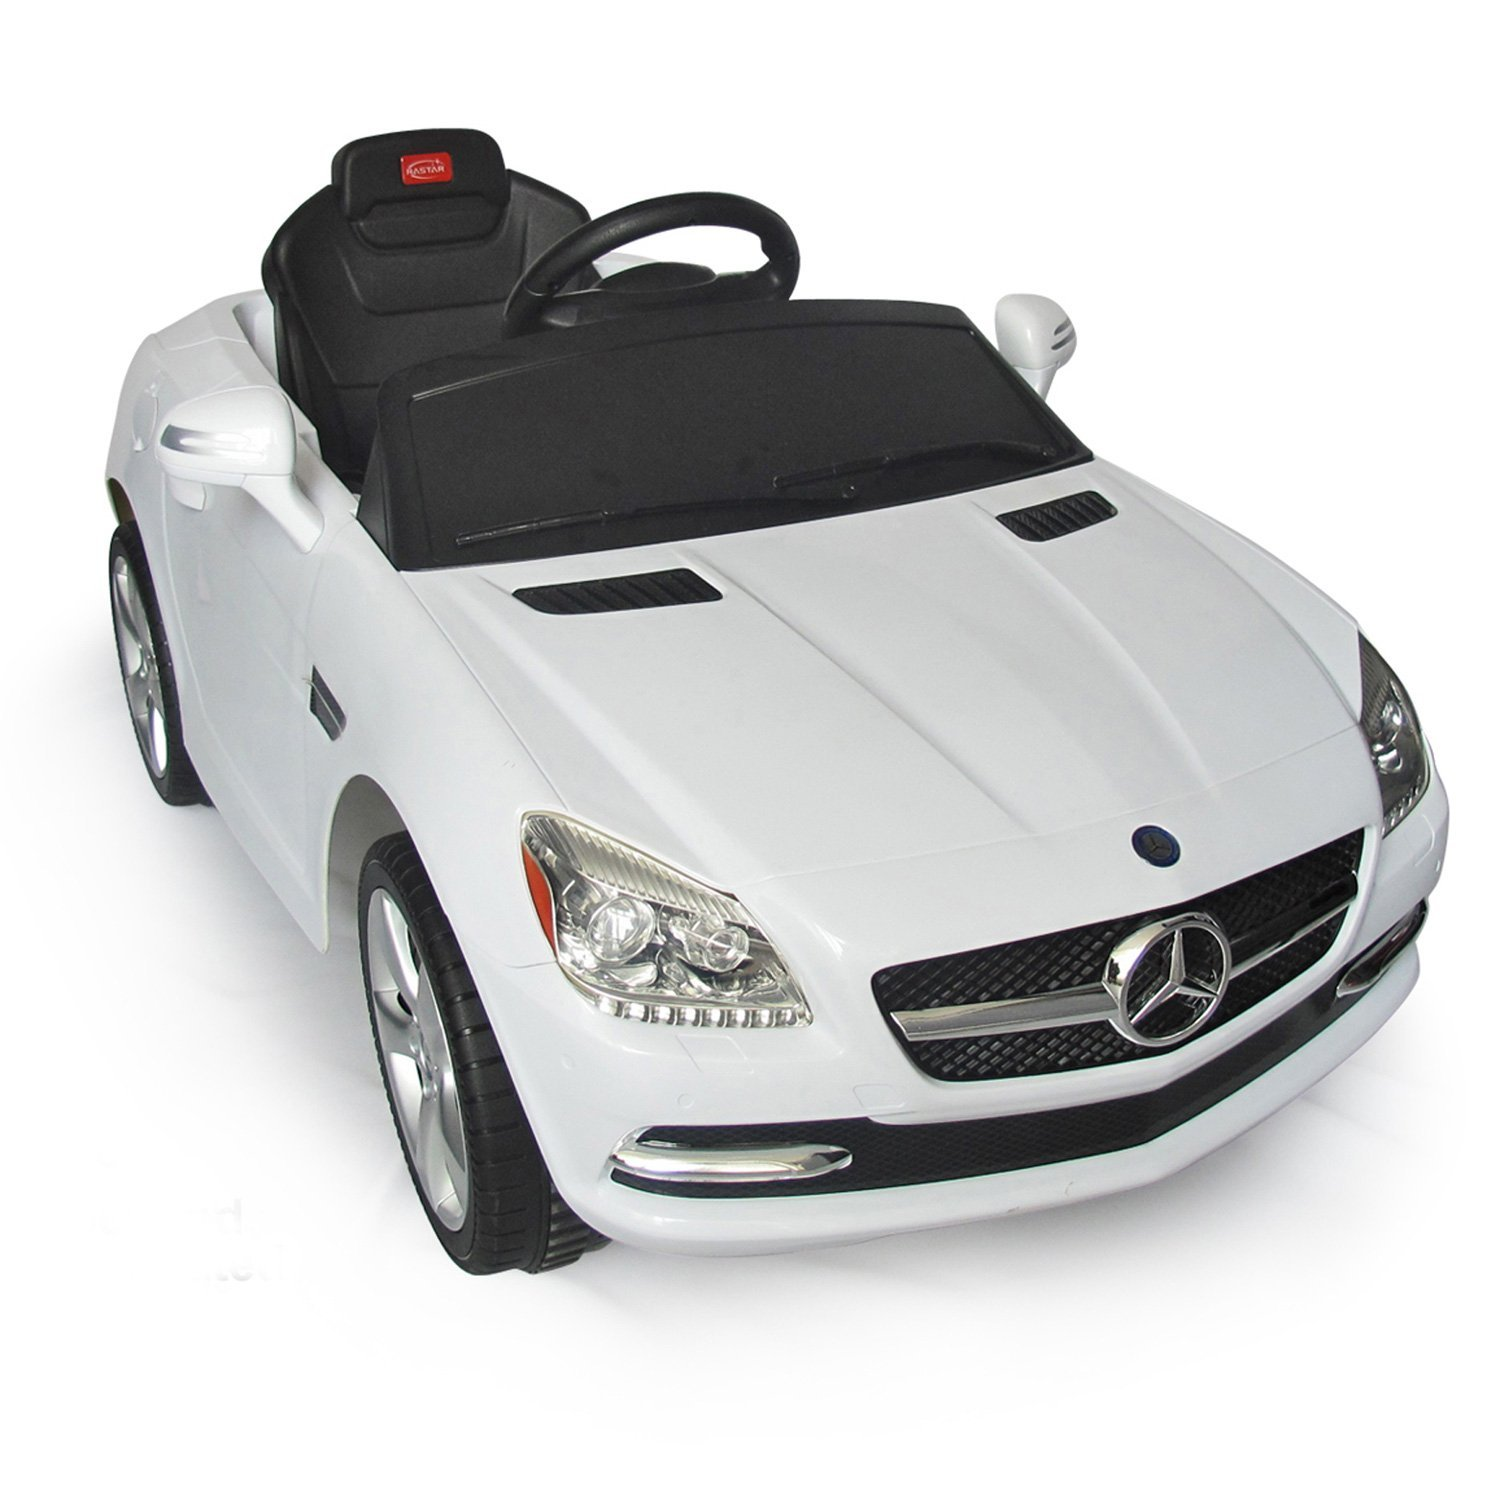 Electric Cars for Kids with Remote Control Inspirational Mercedes Benz Slk Rc Kids Electric Ride On Car – Back to the Future